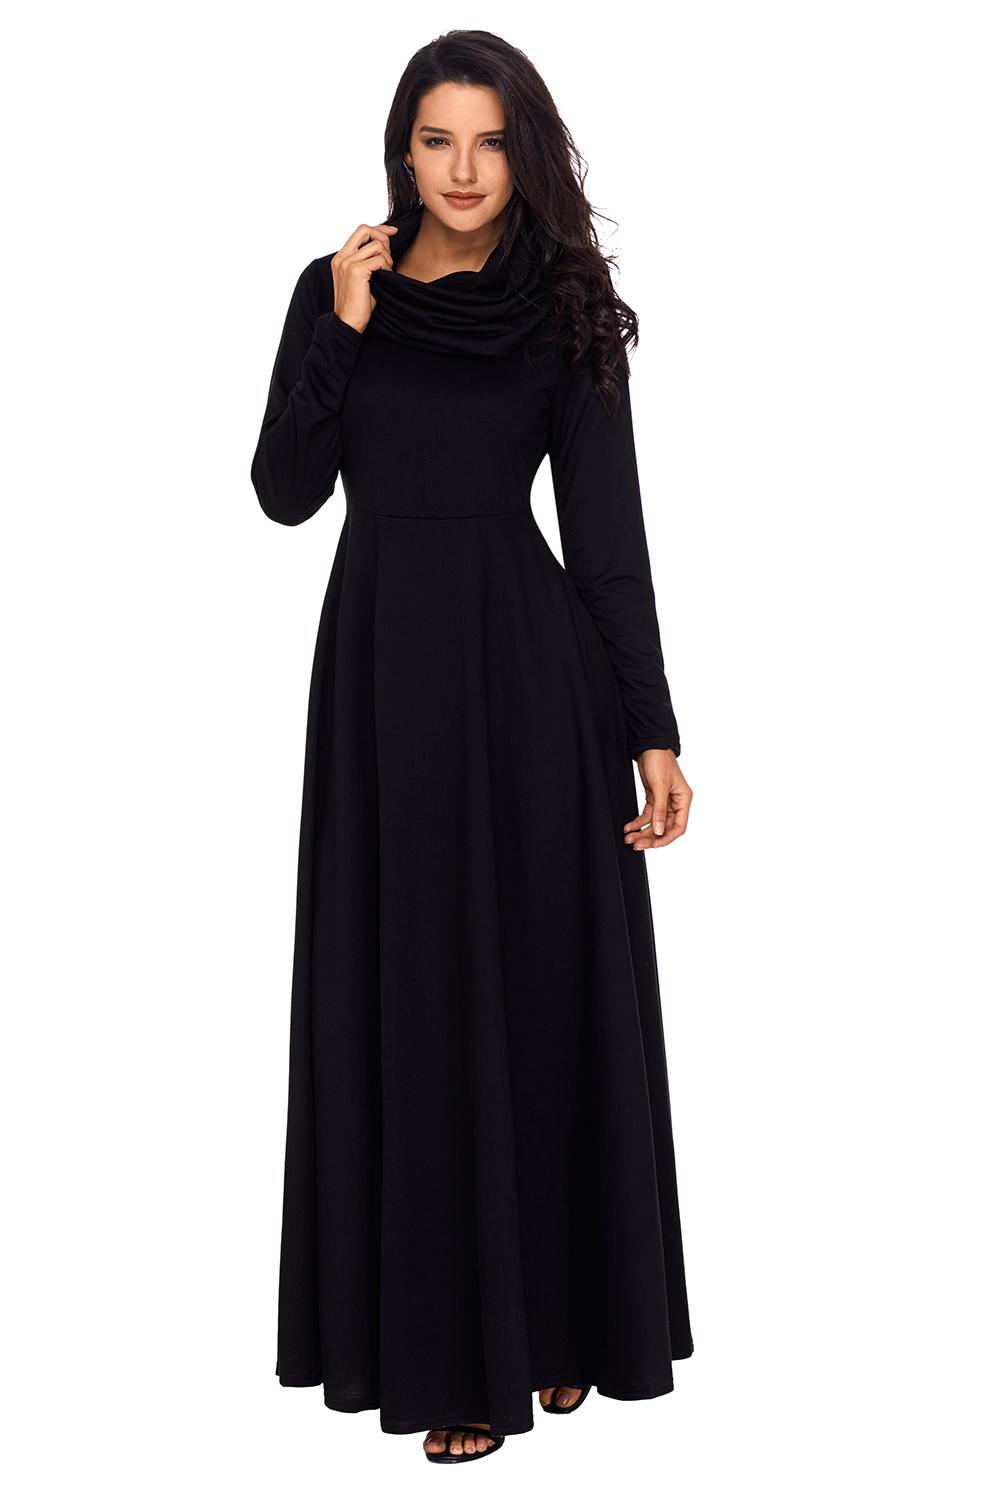 diversified latest designs great varieties search for original Black Cow Neck Long Sleeve Maxi Dress